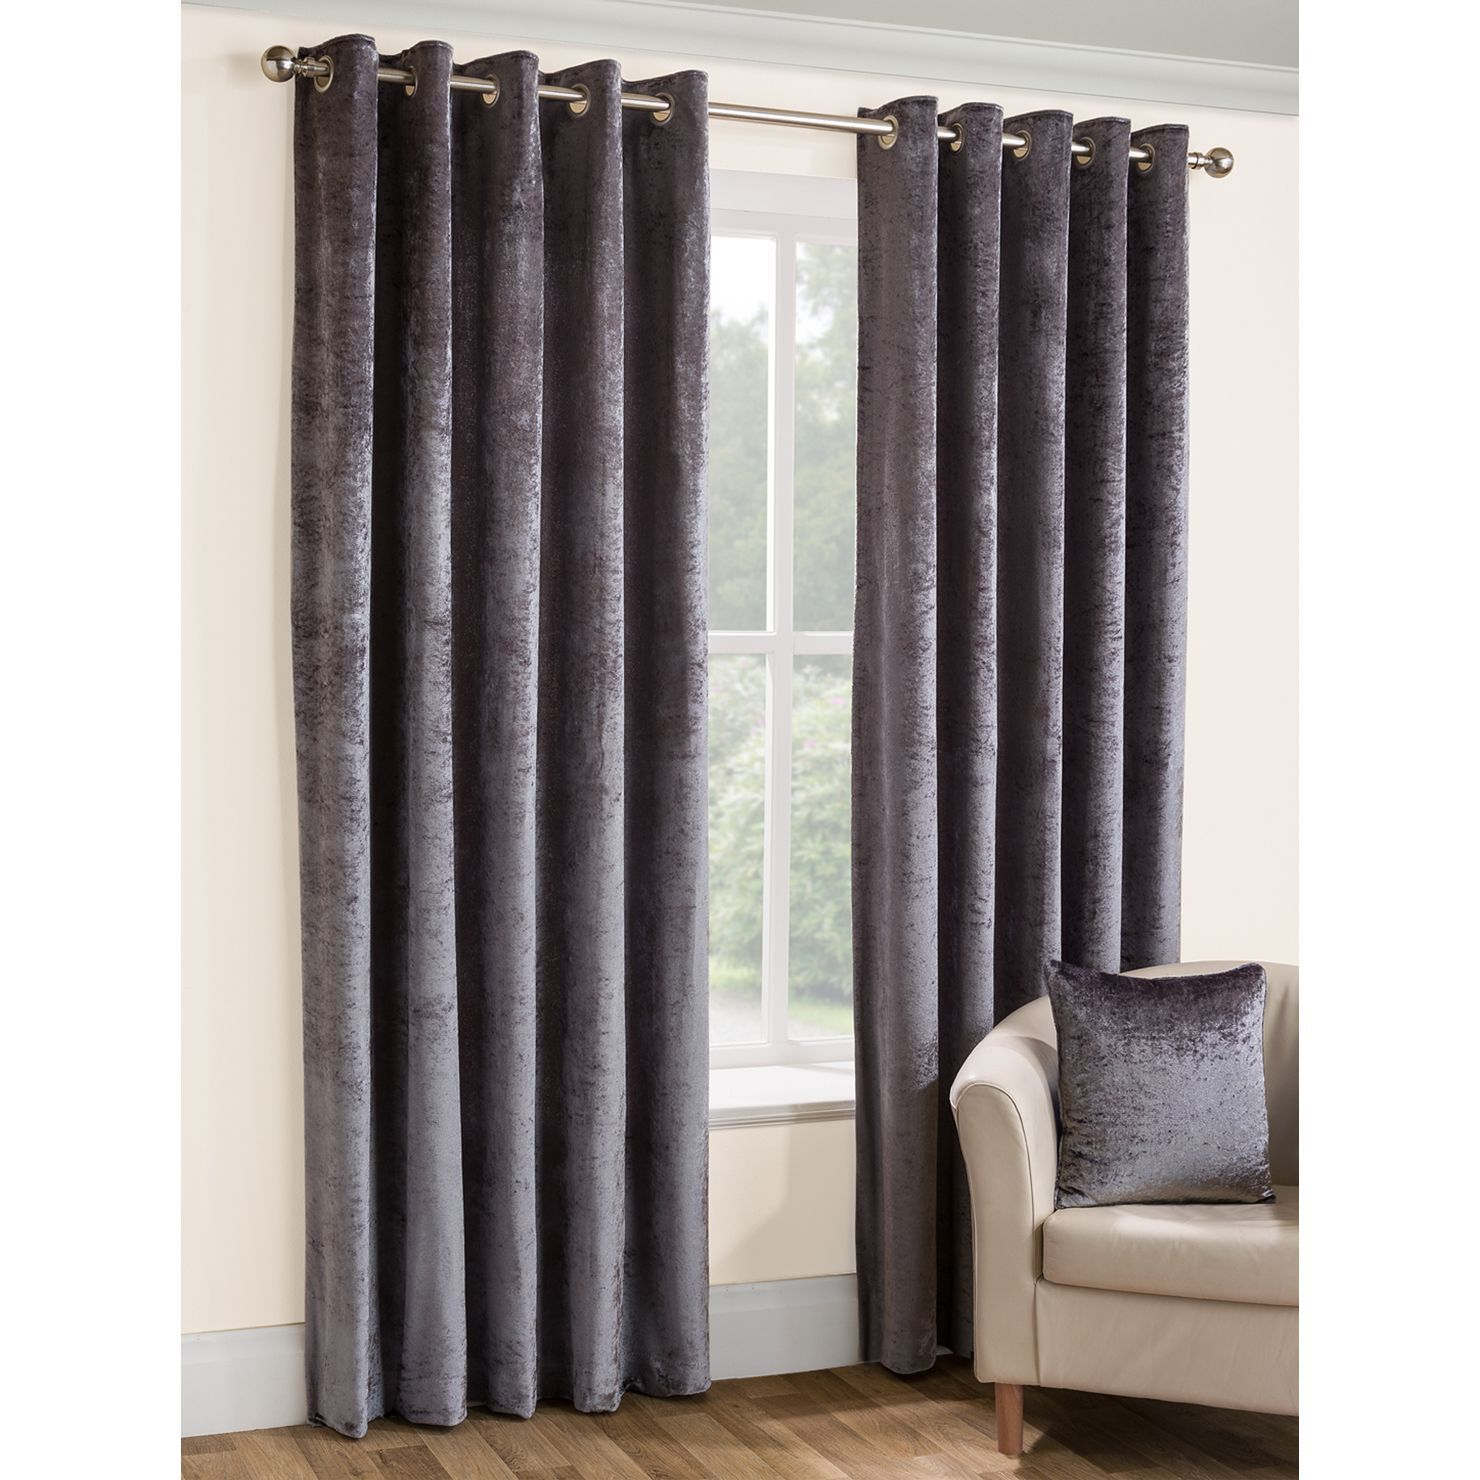 Opulence Lined Ready Made Eyelet Ring Top Crushed Velvet Curtains By Belfield Furnishings In Champagne Praline And Silv Curtains Cool Curtains Velvet Curtains